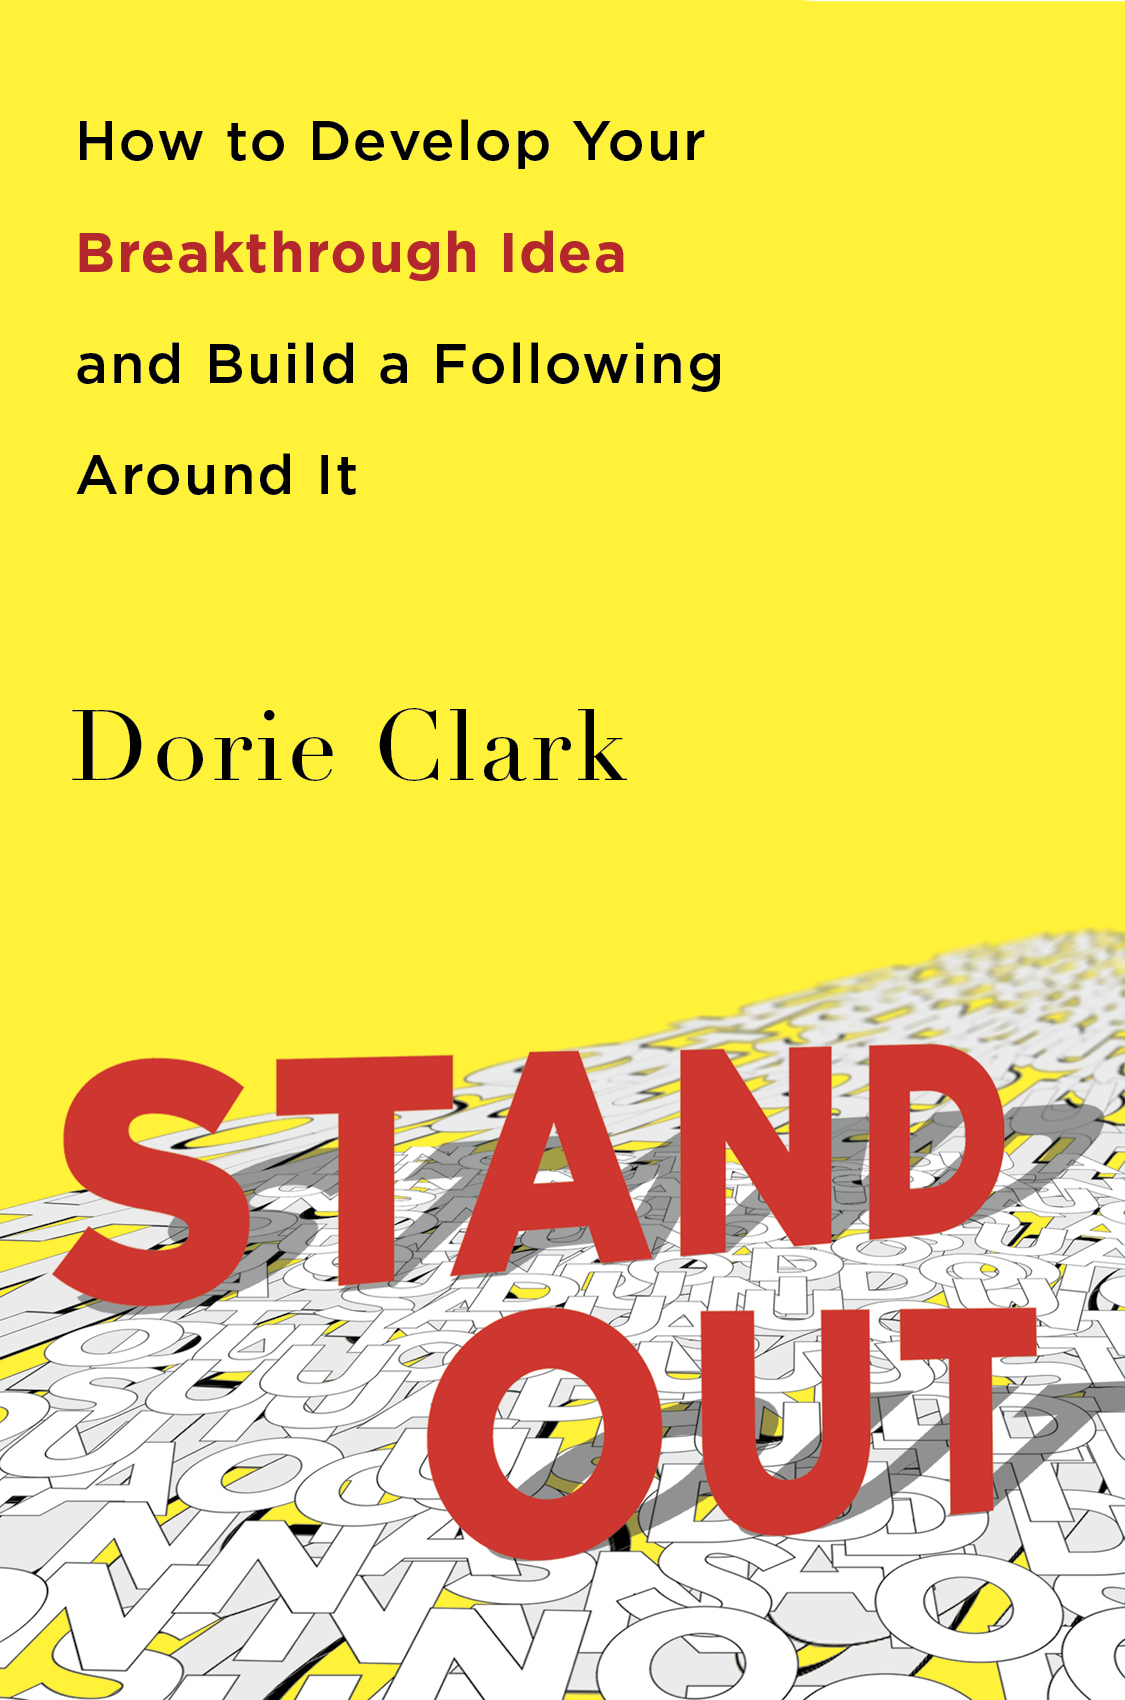 STAND OUT: How to Find Your Breakthrough Idea & Build a Following Around It.